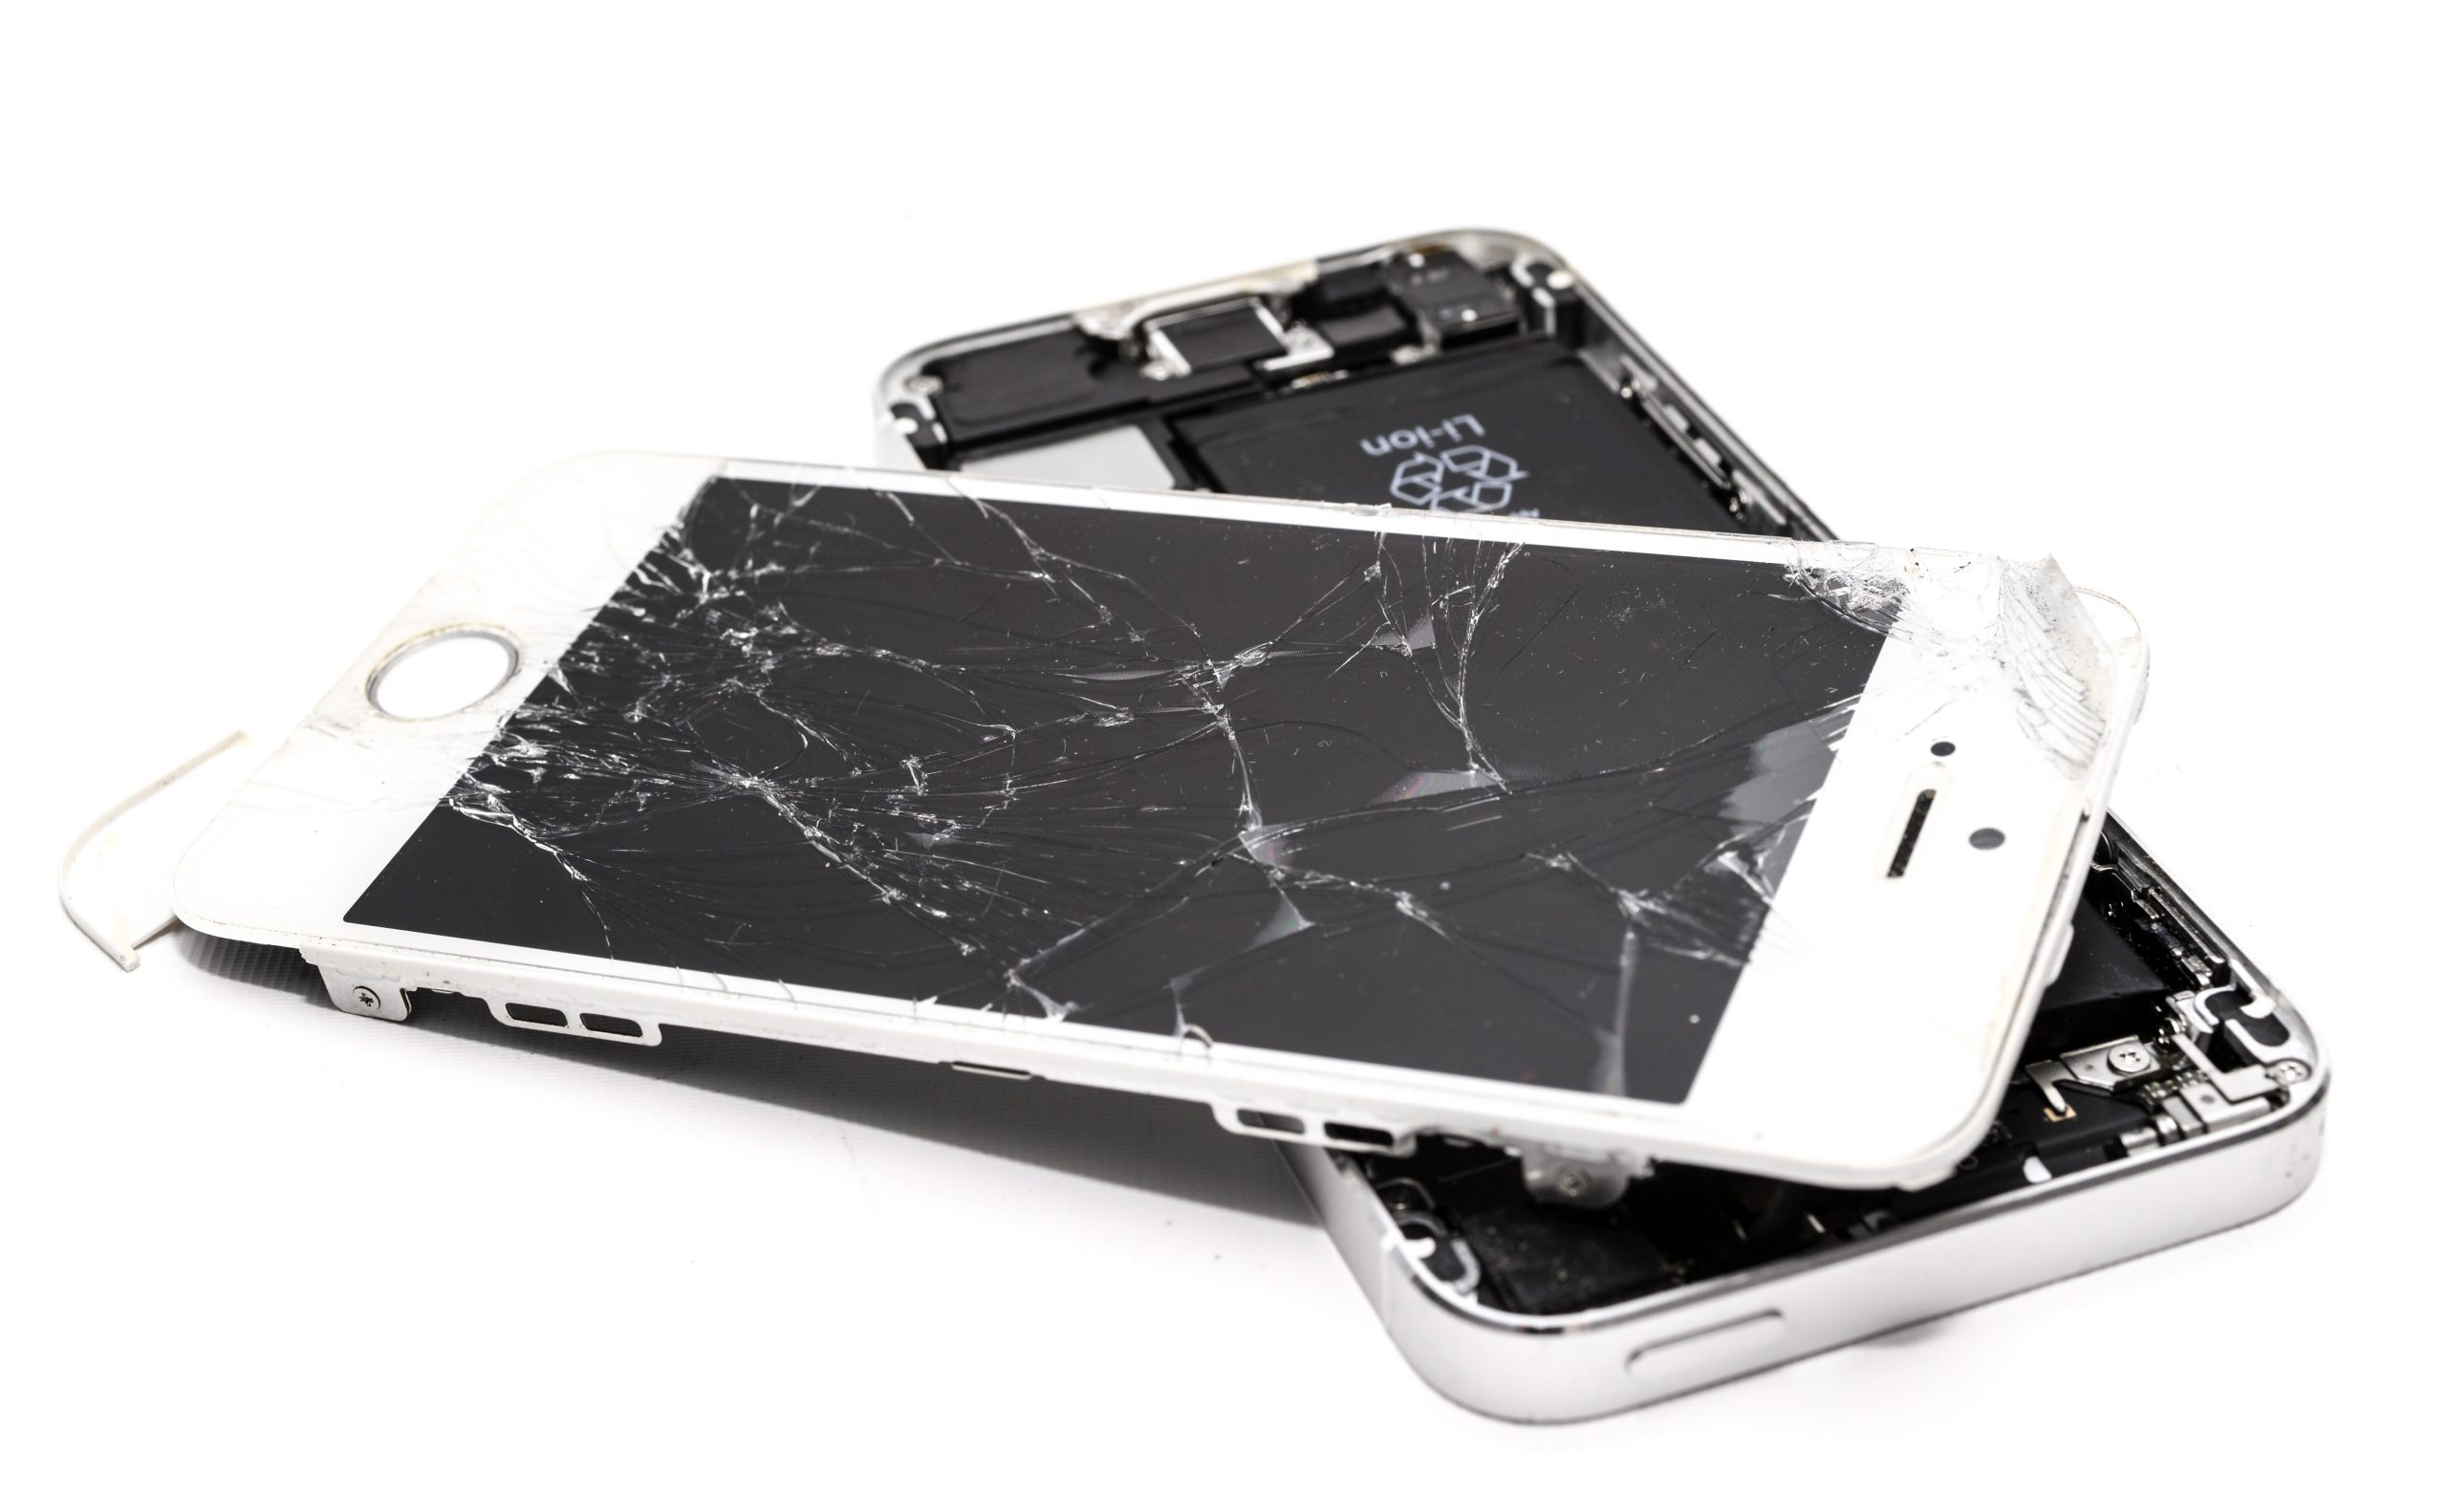 Broken Phone?  – You Have Choices